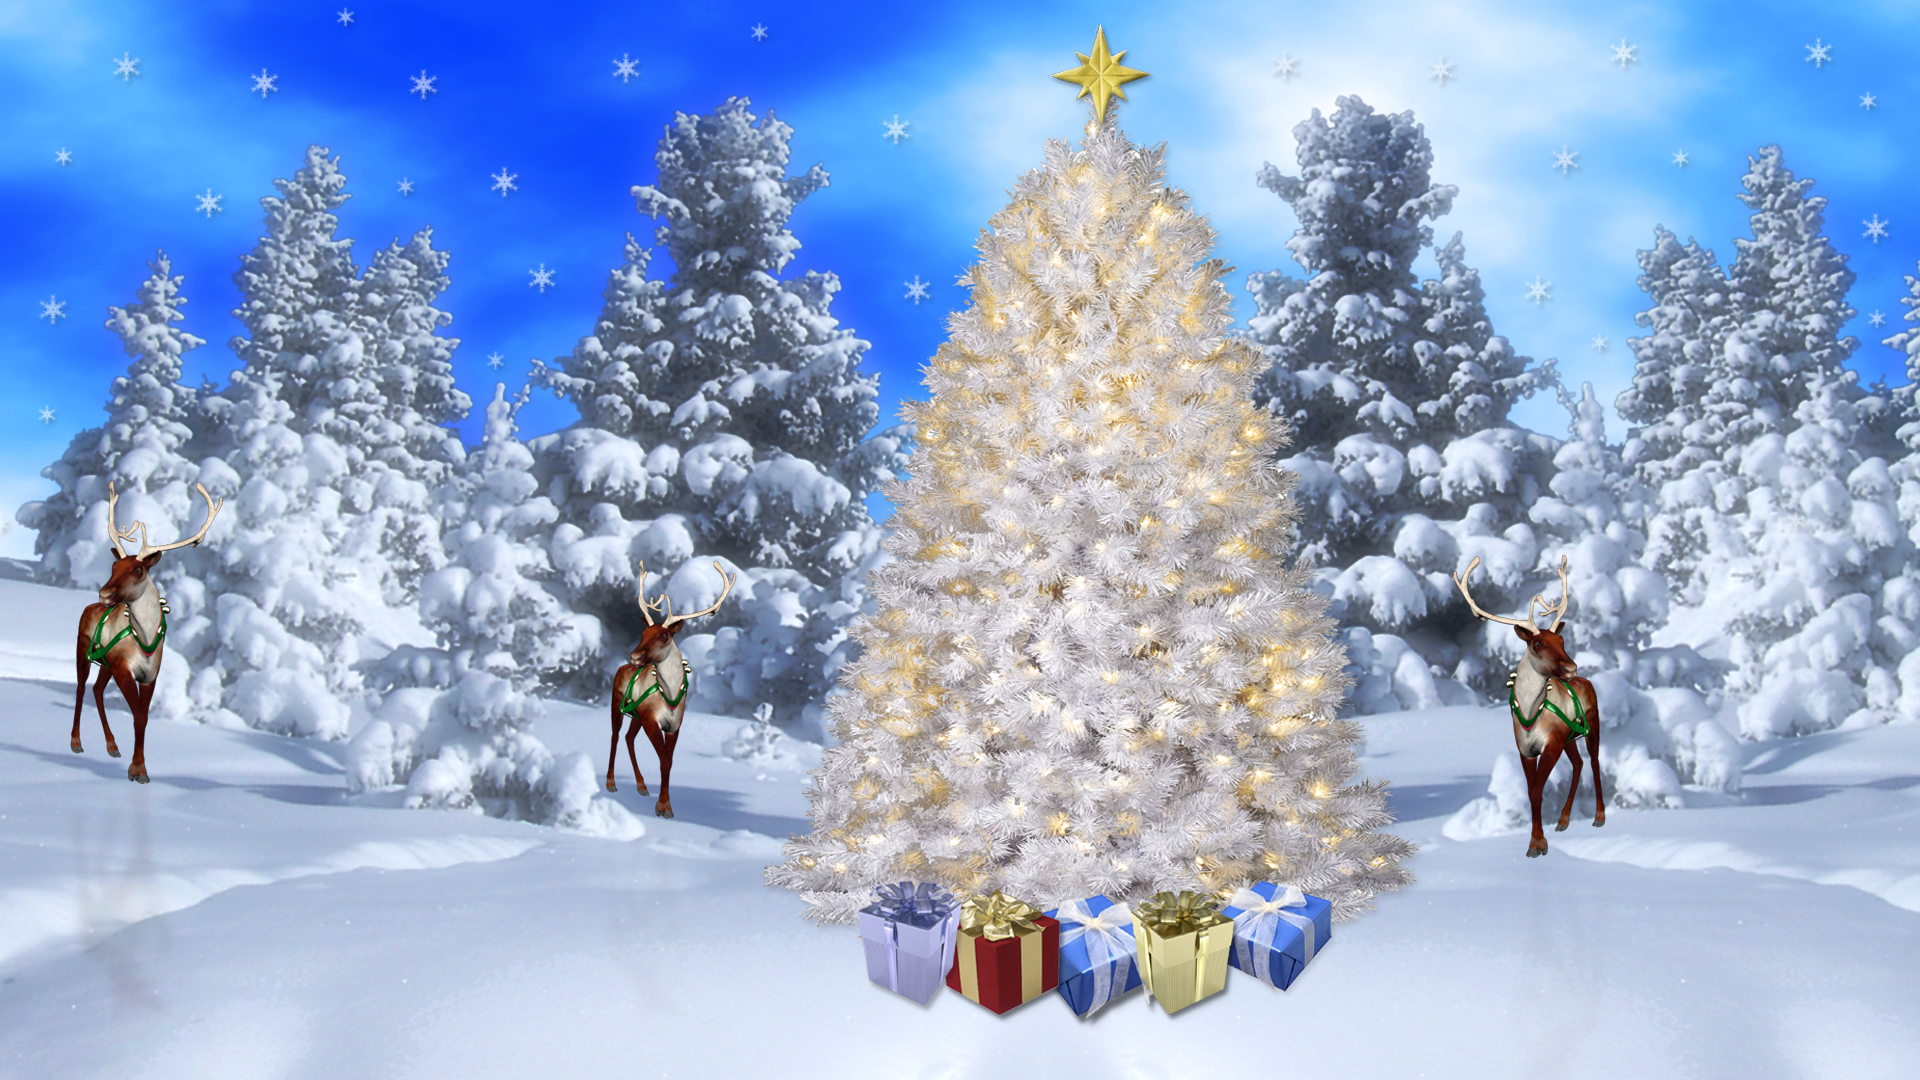 wallpapers screensavers explore christmas white wilderness 1920x1080